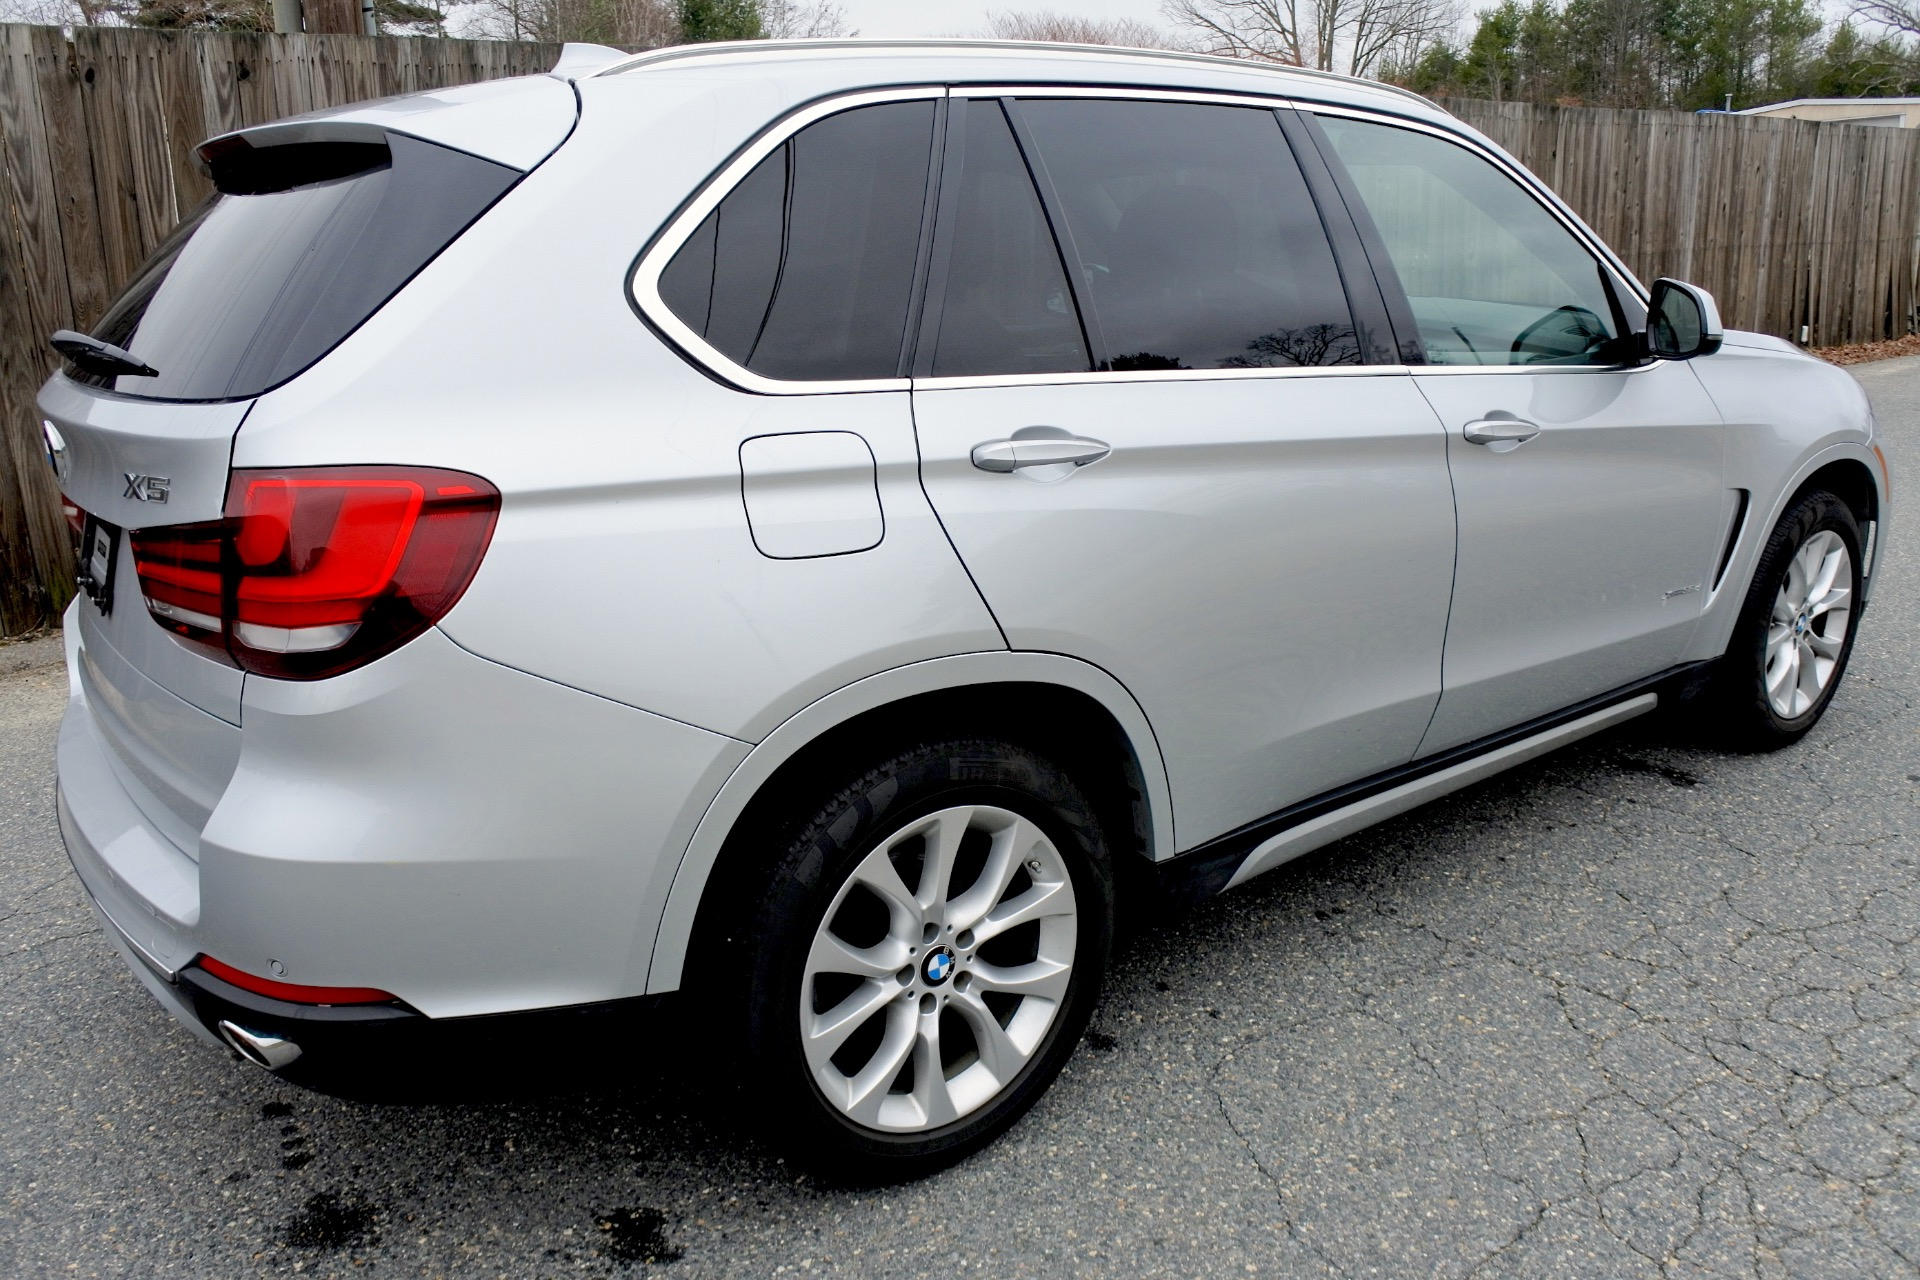 Used 2015 BMW X5 AWD 4dr xDrive35d Used 2015 BMW X5 AWD 4dr xDrive35d for sale  at Metro West Motorcars LLC in Shrewsbury MA 5